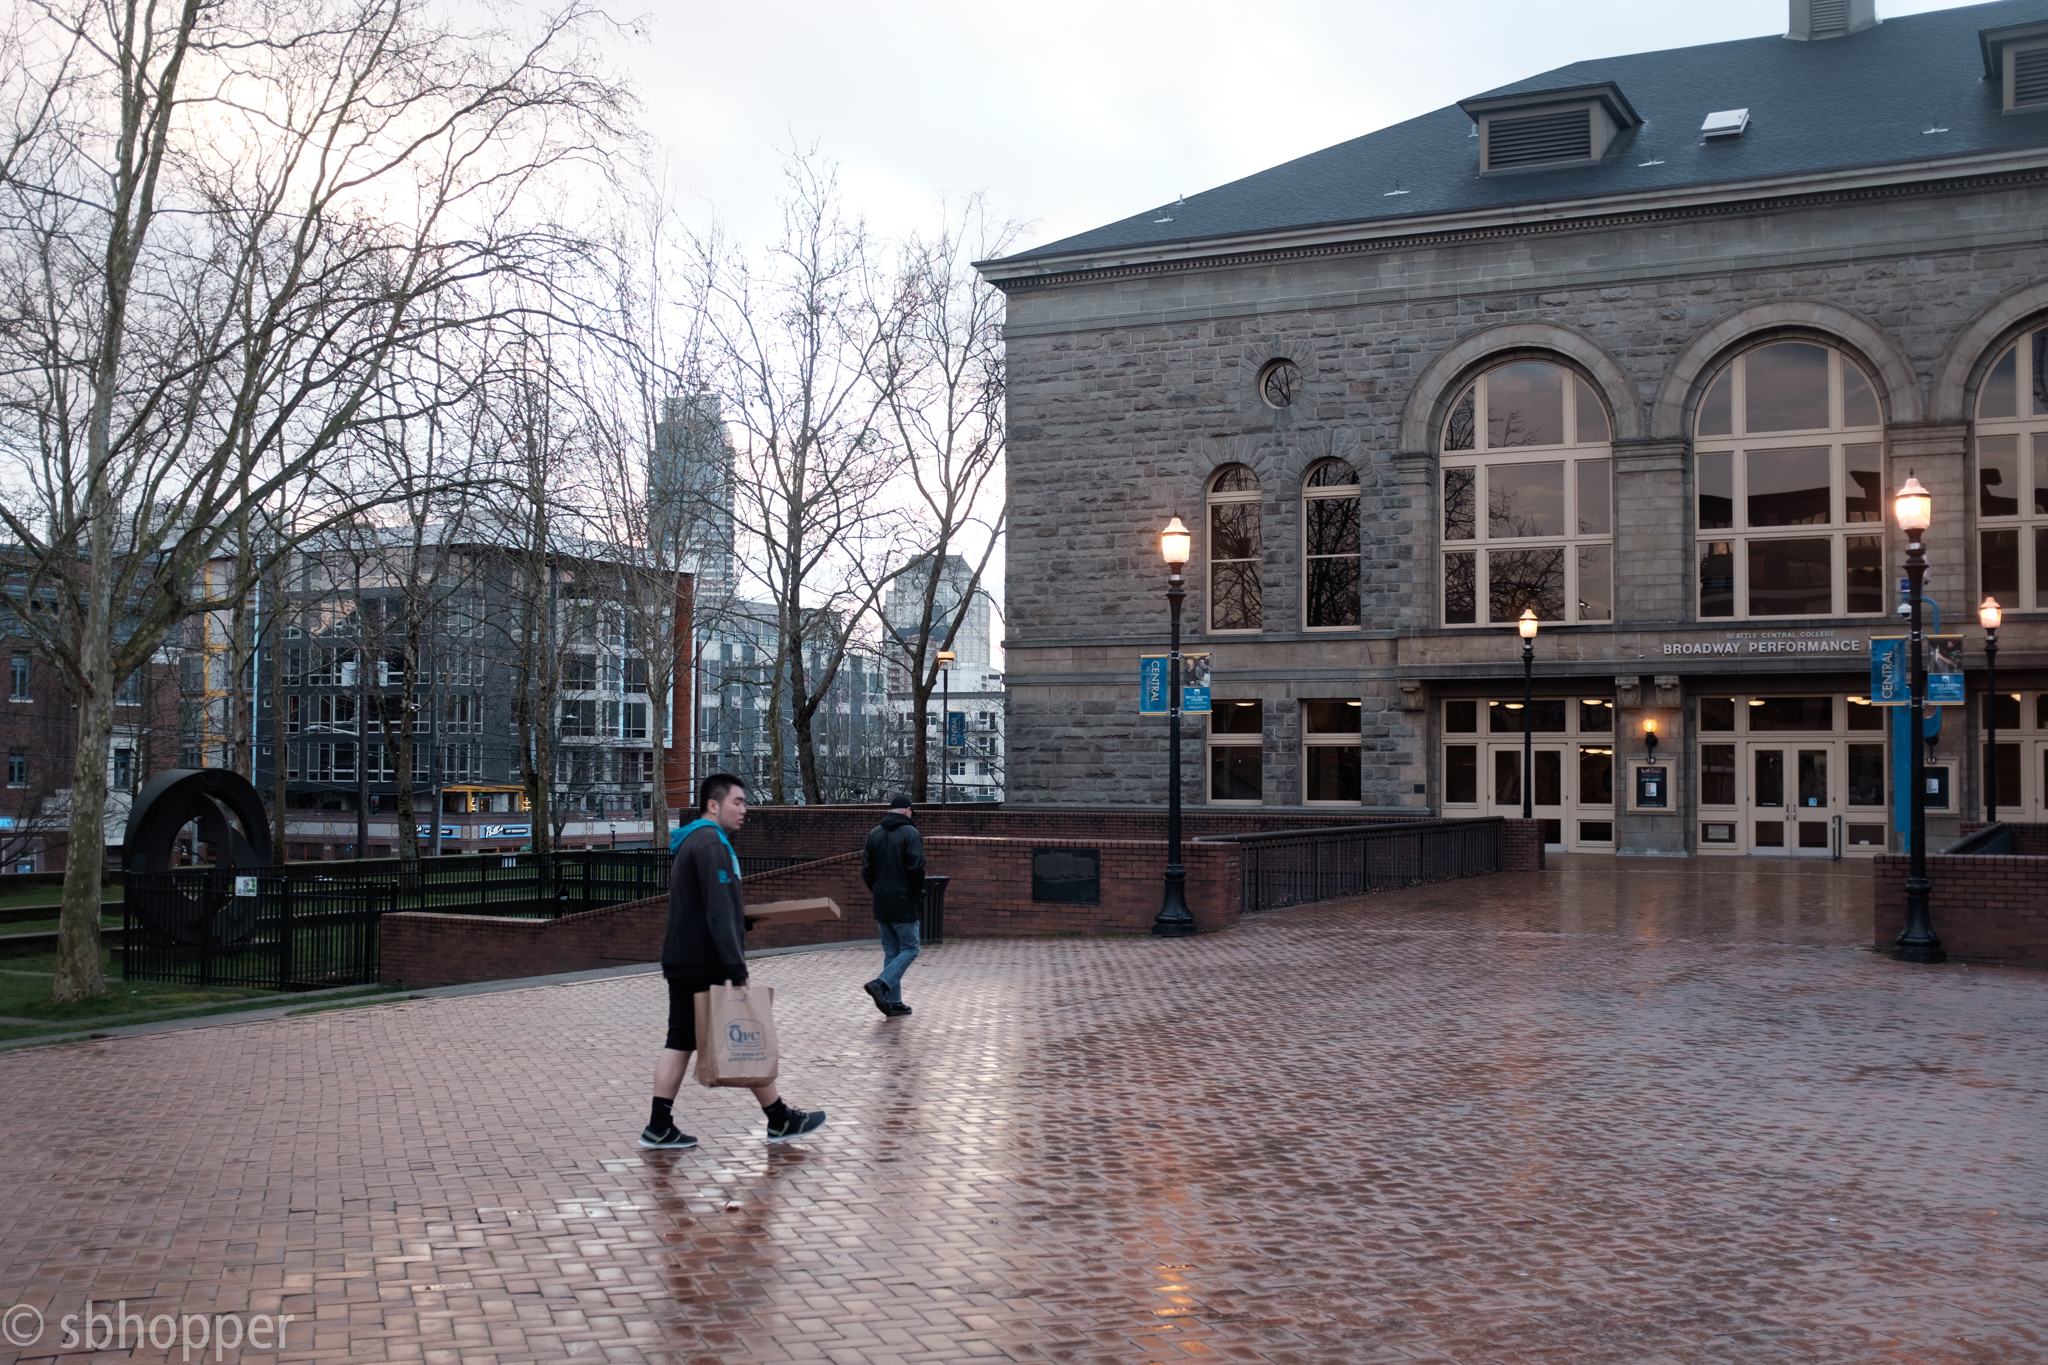 Seattle Central College, Broadway Performance Hall, Capitol Hill, Seattle, March 2018.